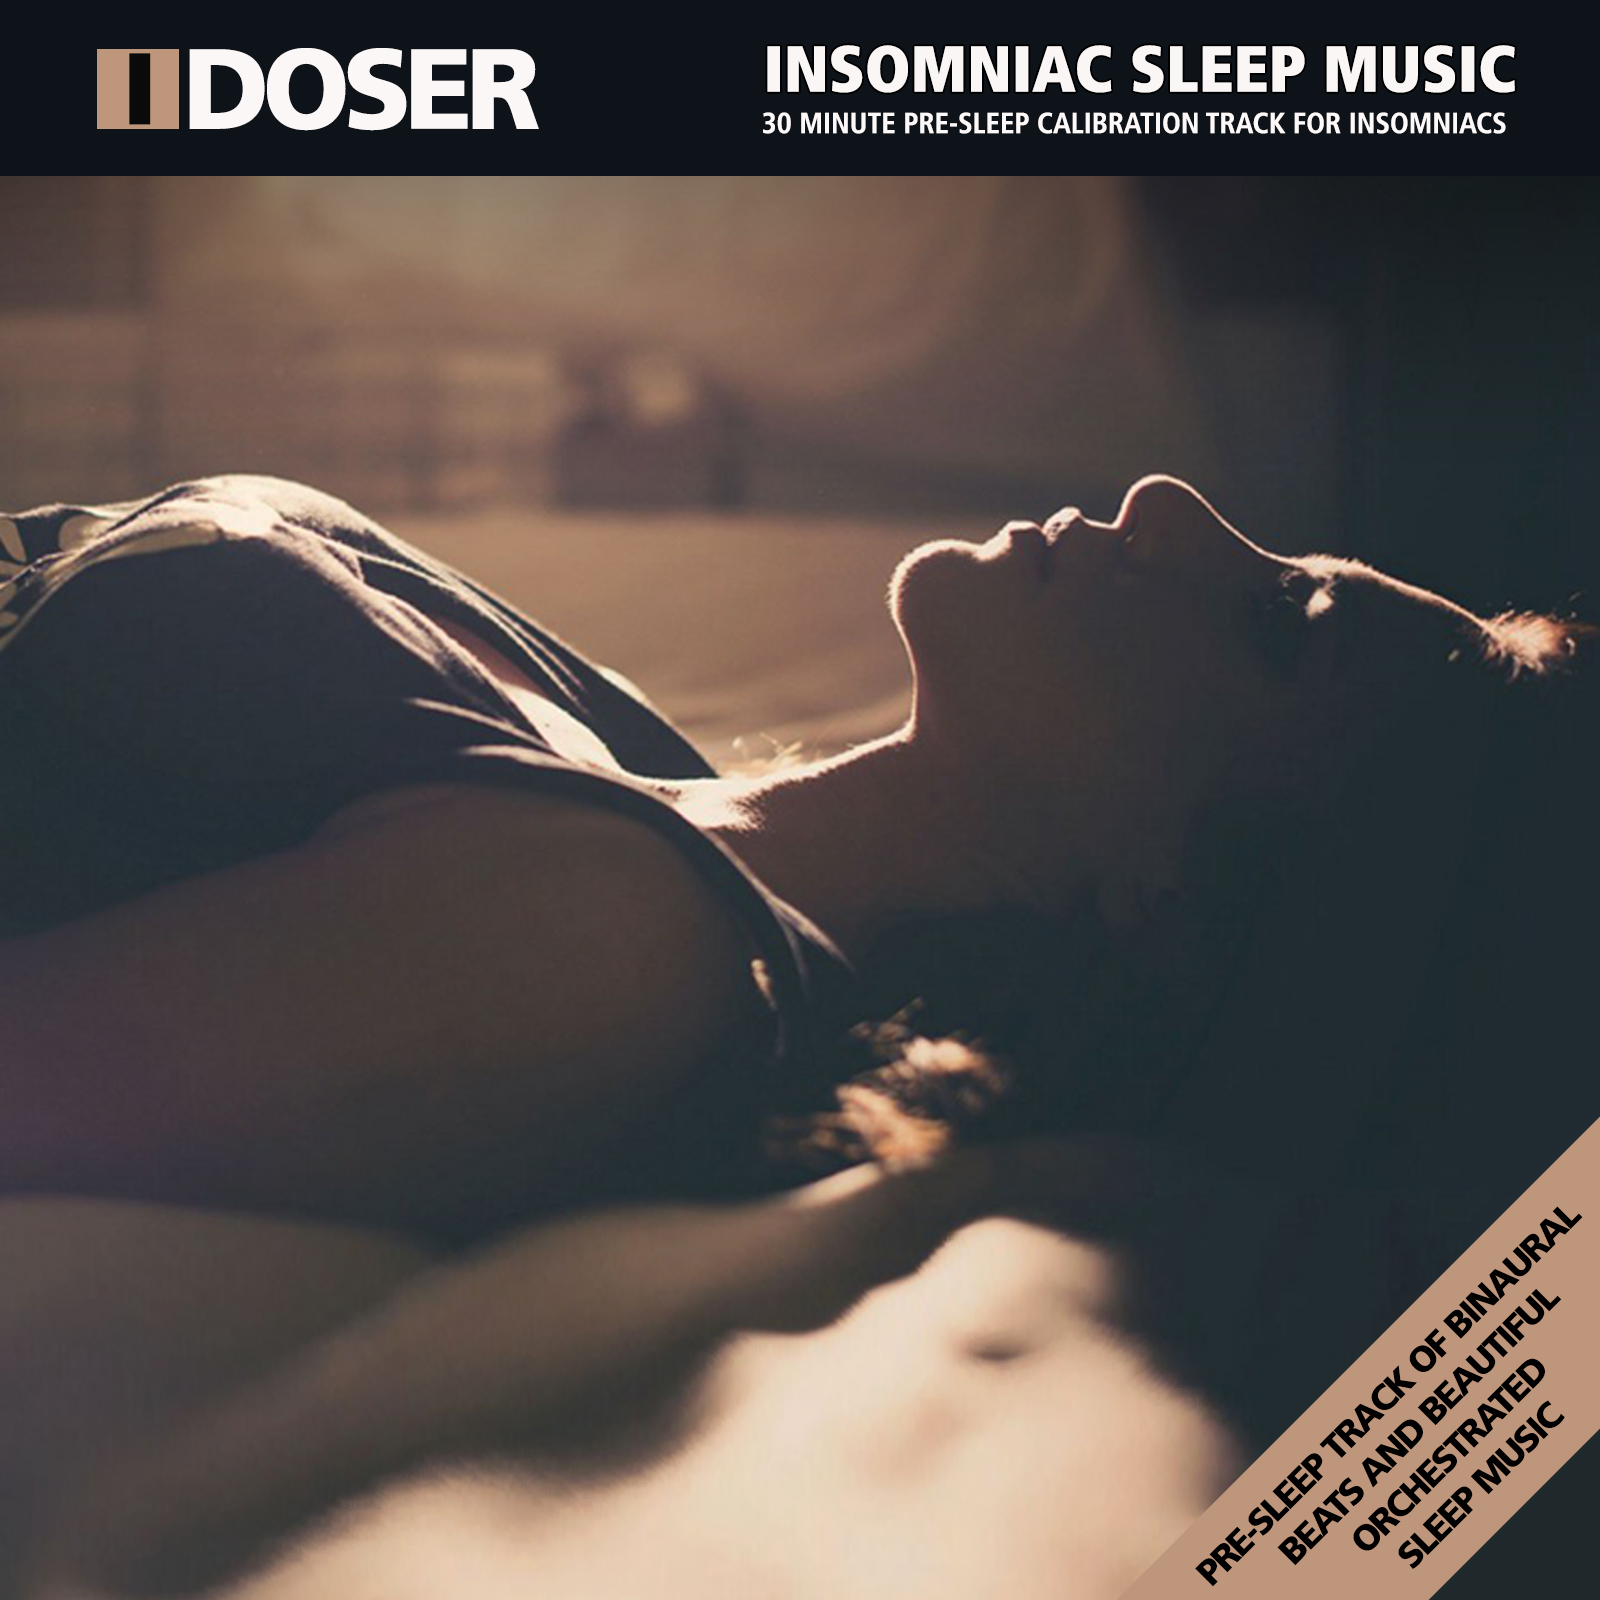 Insomniac Sleep Music